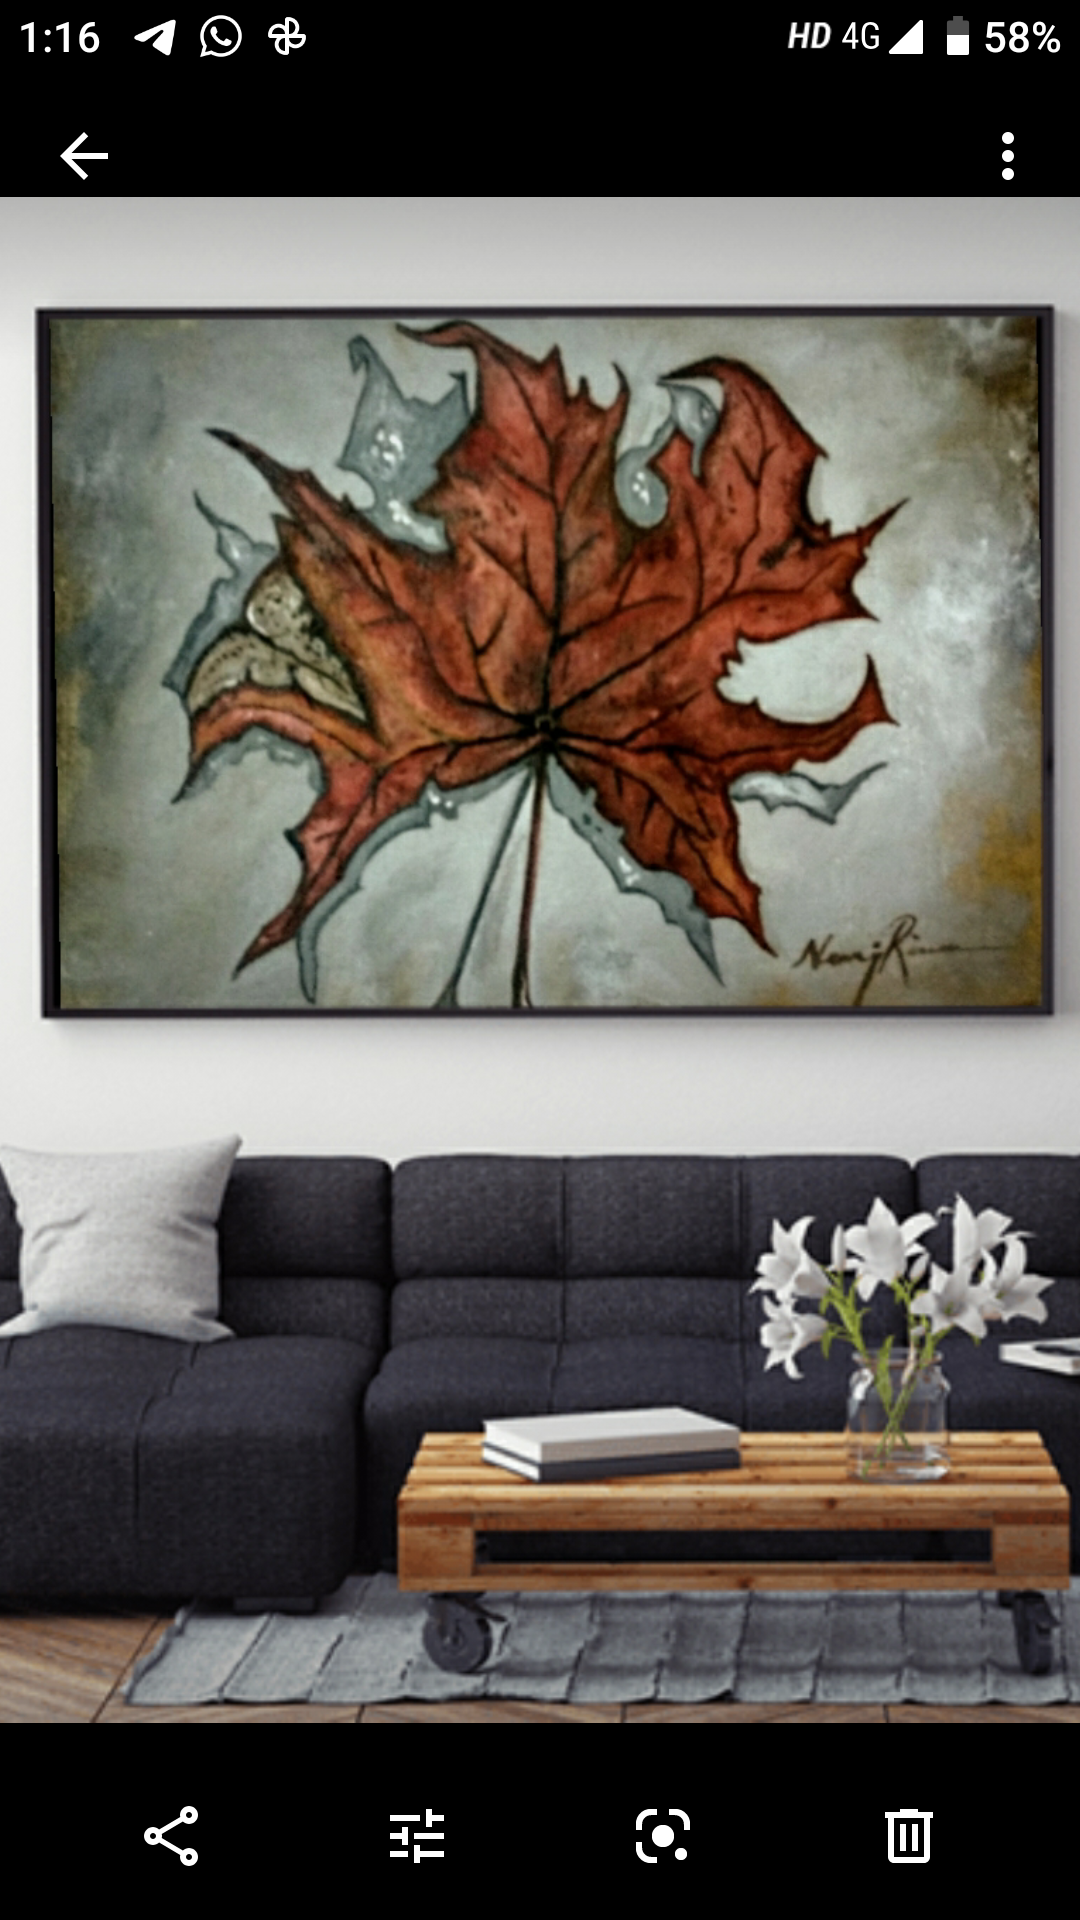 Maplehues from kashmir on wall2